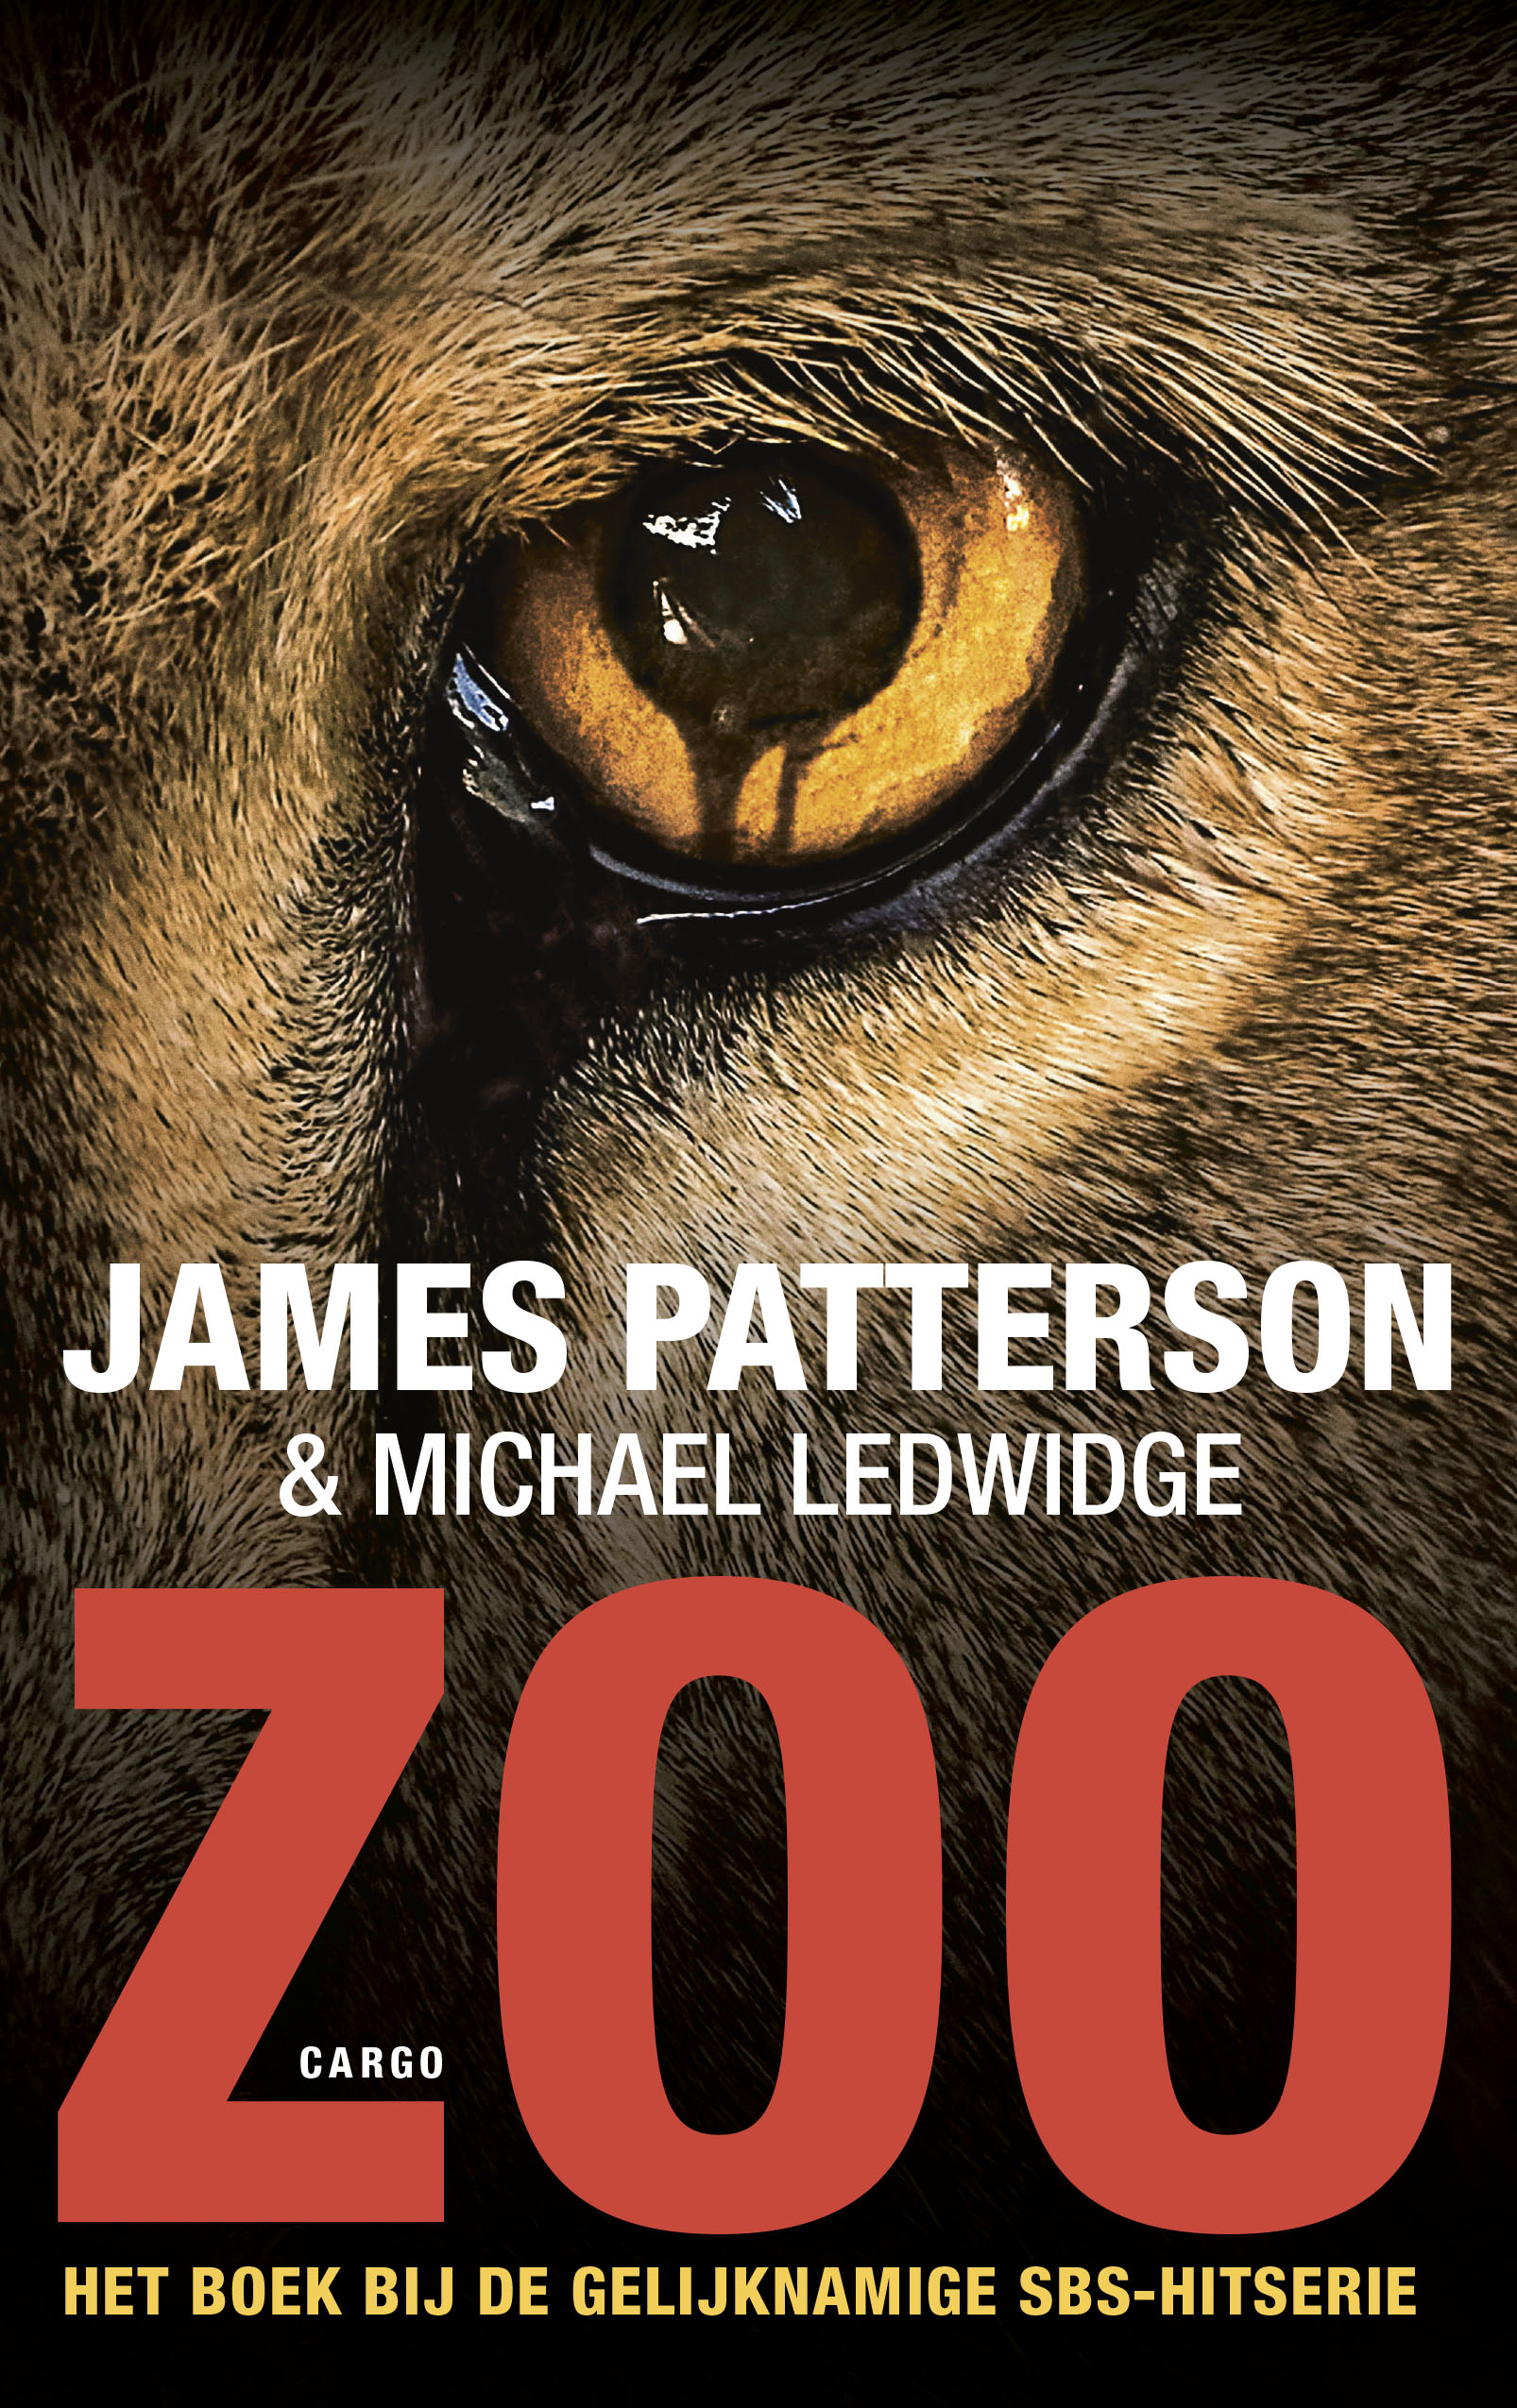 Zoo – James Patterson